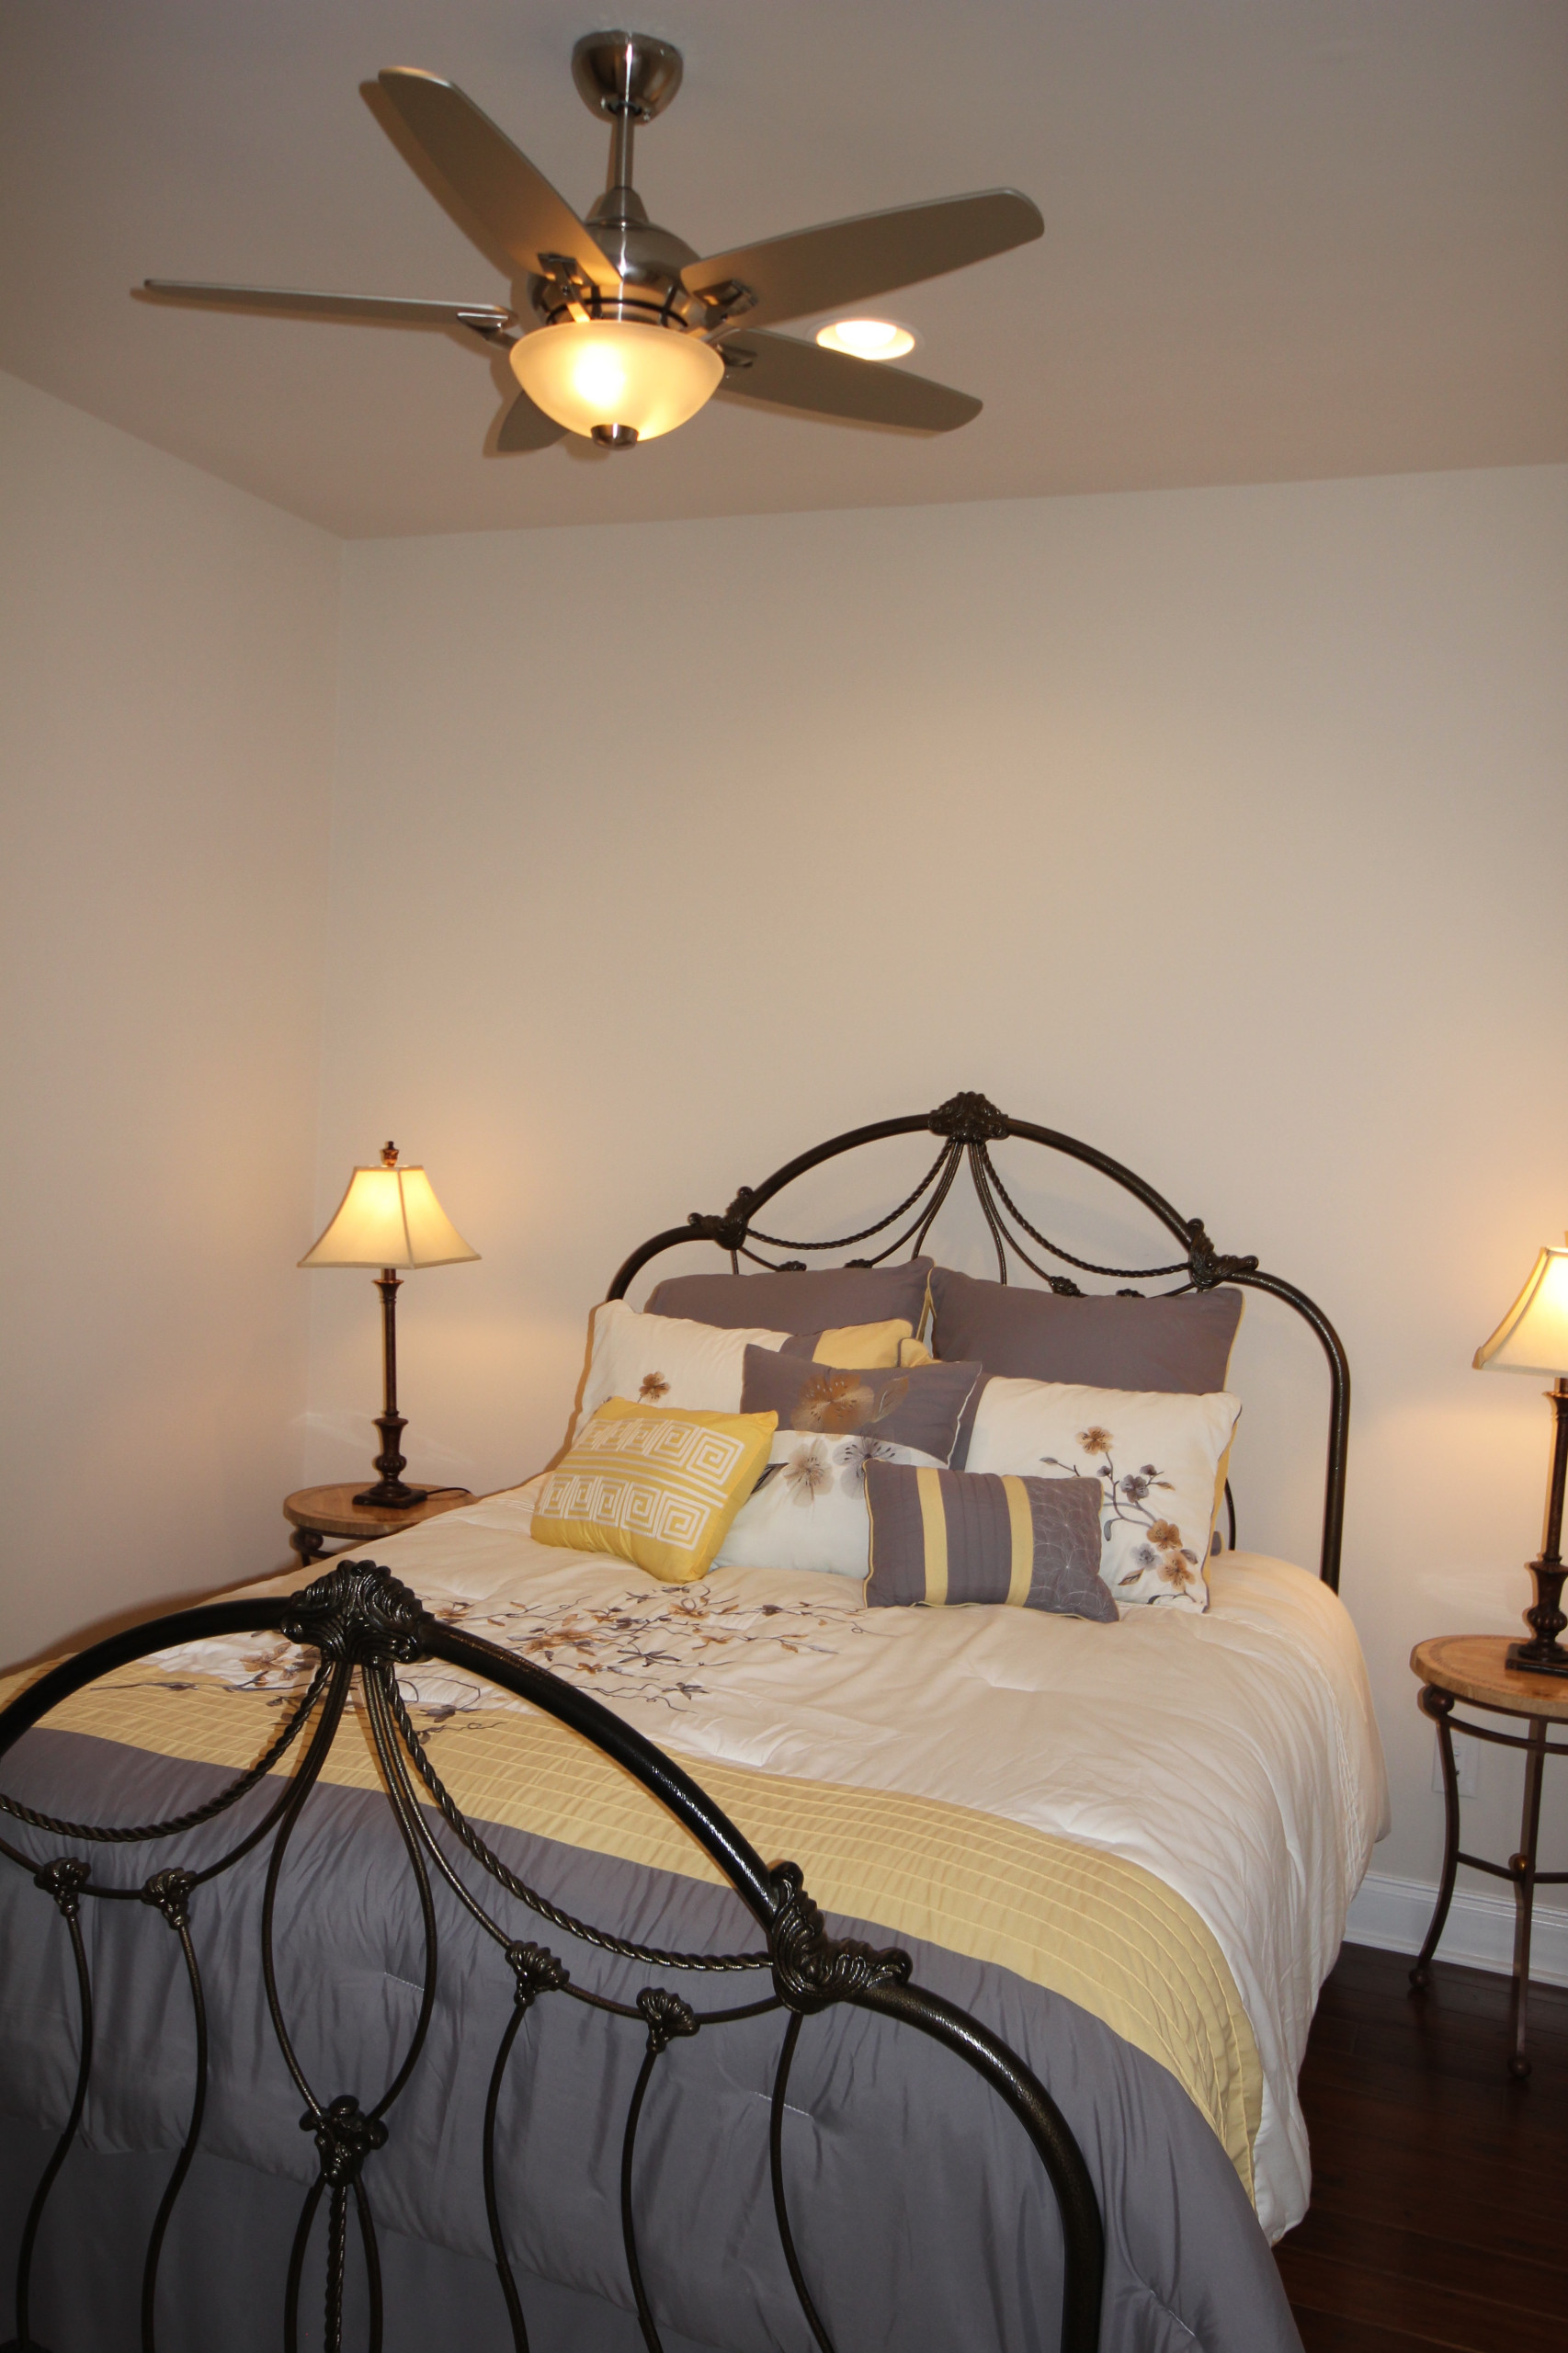 Guest Bedroom in Yellows and Grays